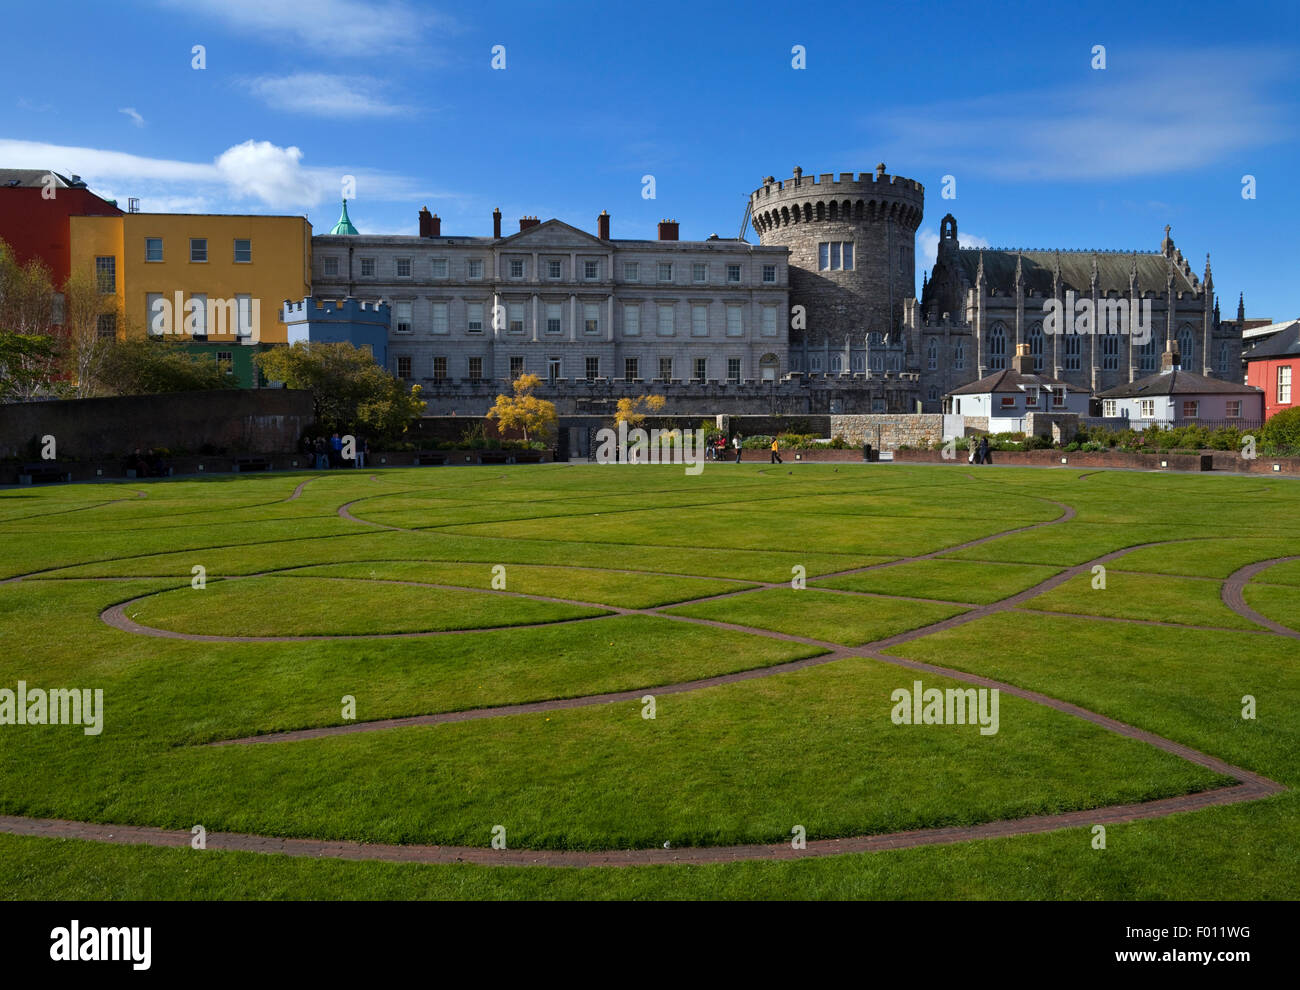 The Record Tower, Chapel Royal and other Buildings, From the Dubh Linn Gardens Behind Dublin Castle, Dublin City, - Stock Image